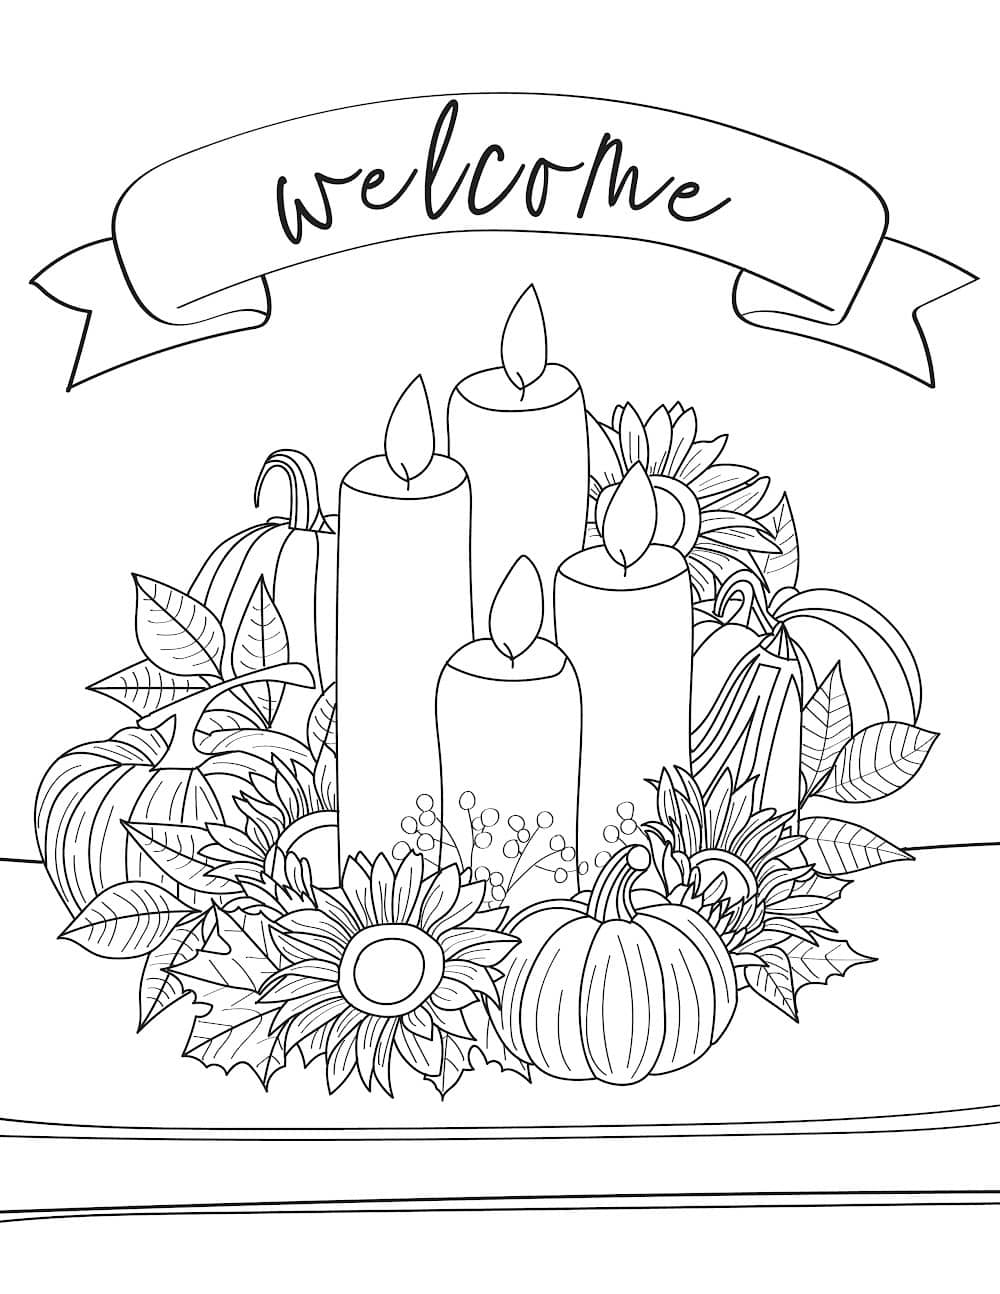 When decorated these frugal but not free fall coloring pages for adults will make beautiful DIY fall decorations.